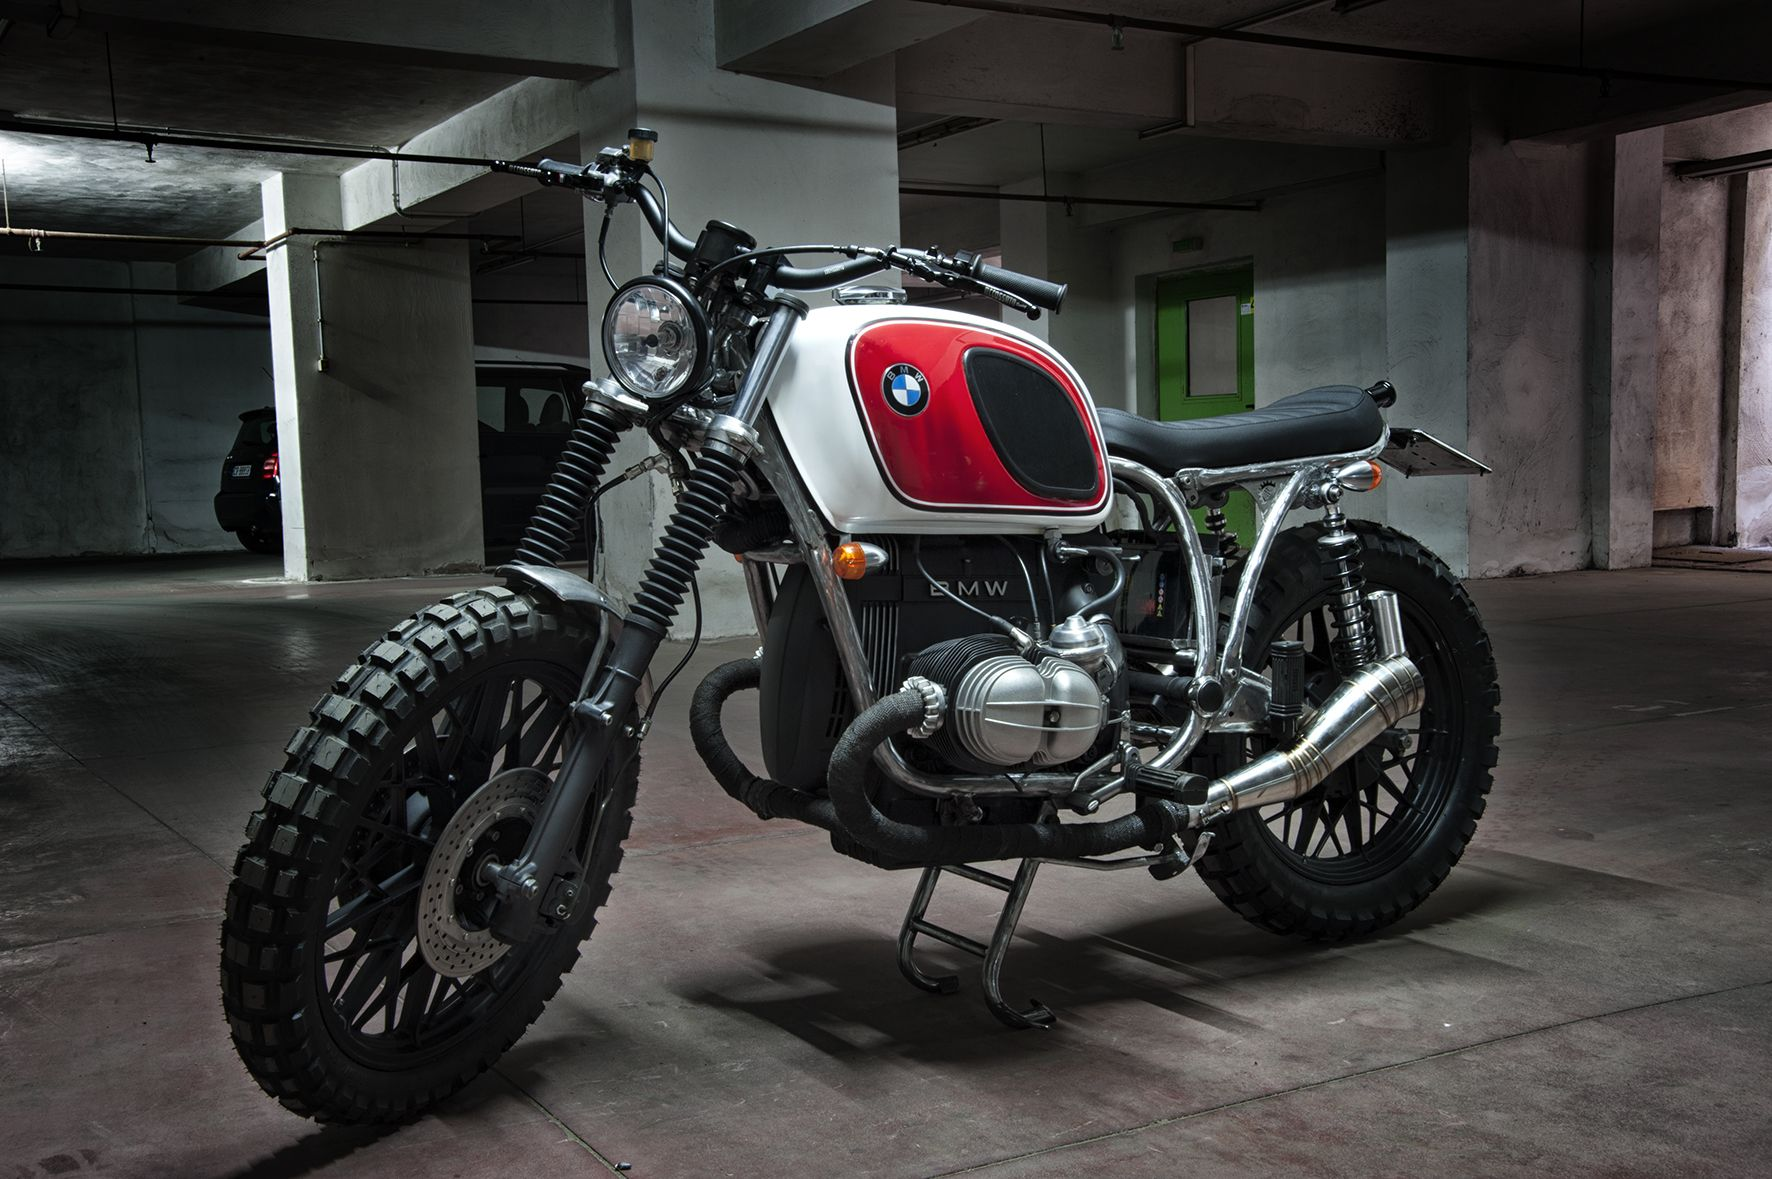 bmw r80 boxer country scrambler by motorecyclos motorecyclos boxer country pinterest. Black Bedroom Furniture Sets. Home Design Ideas